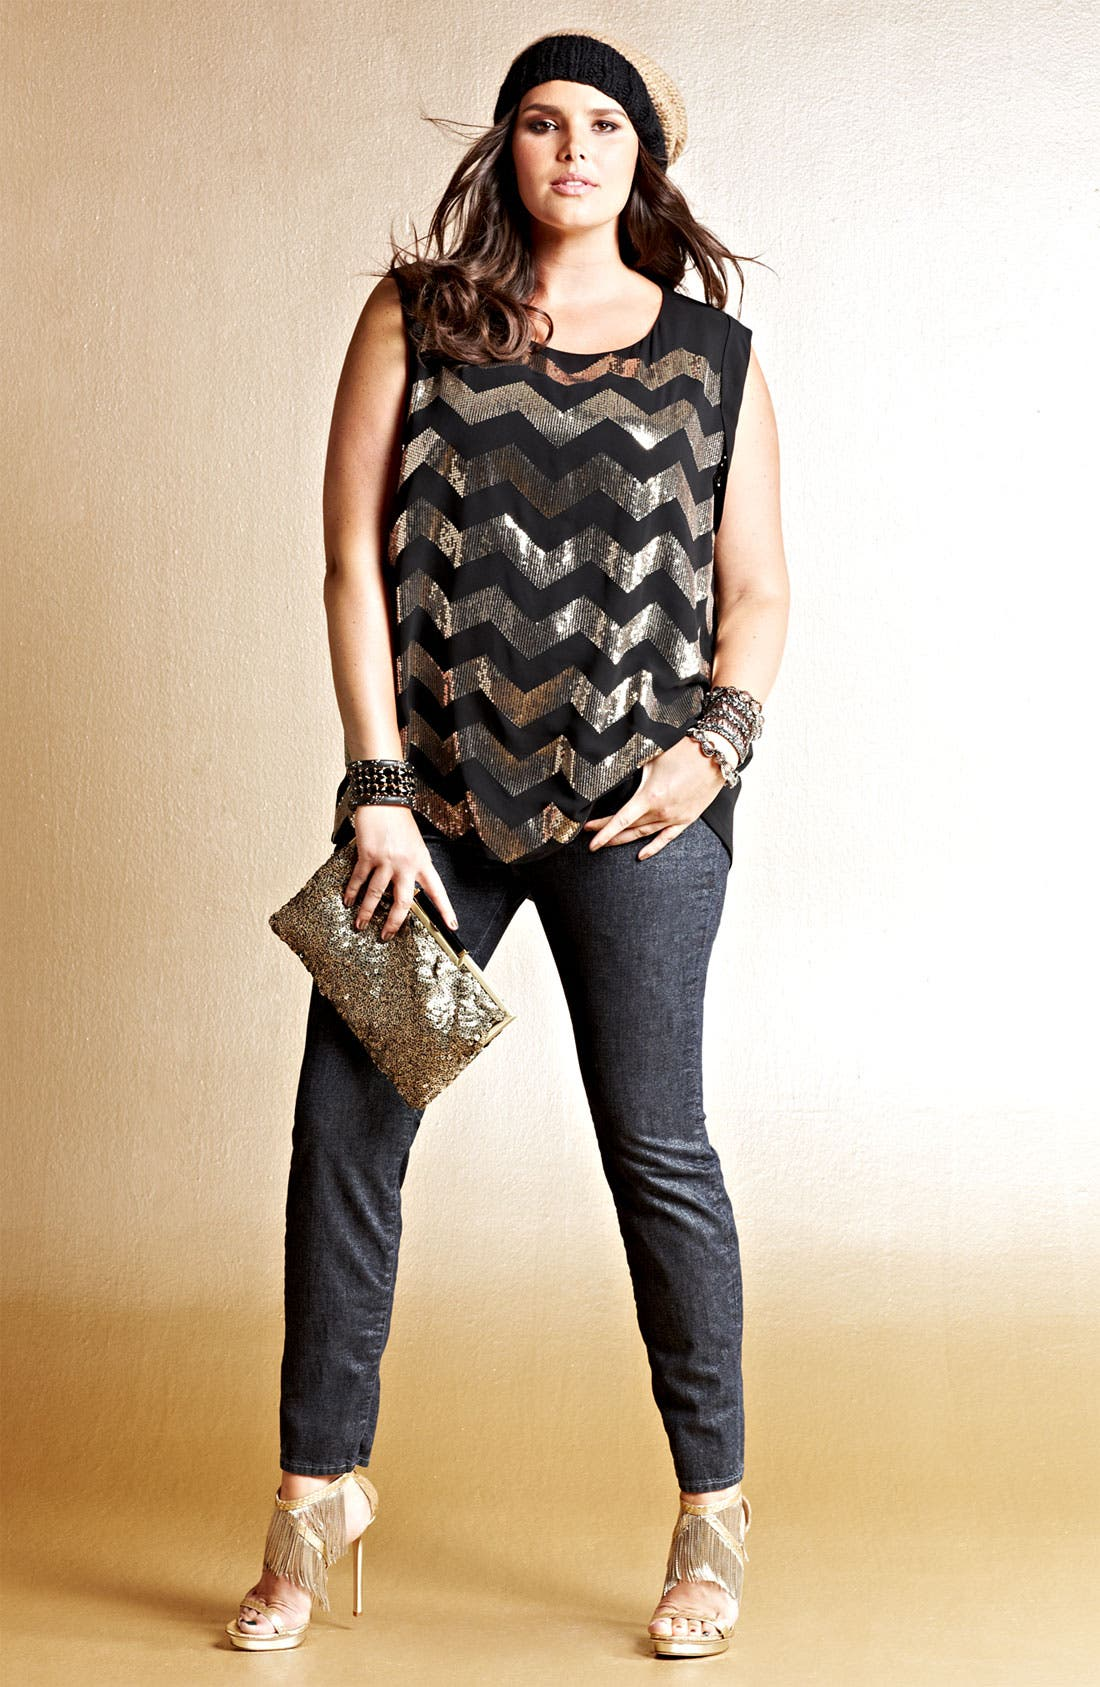 Main Image - Vince Camuto Blouse & Lucky Brand Jeans